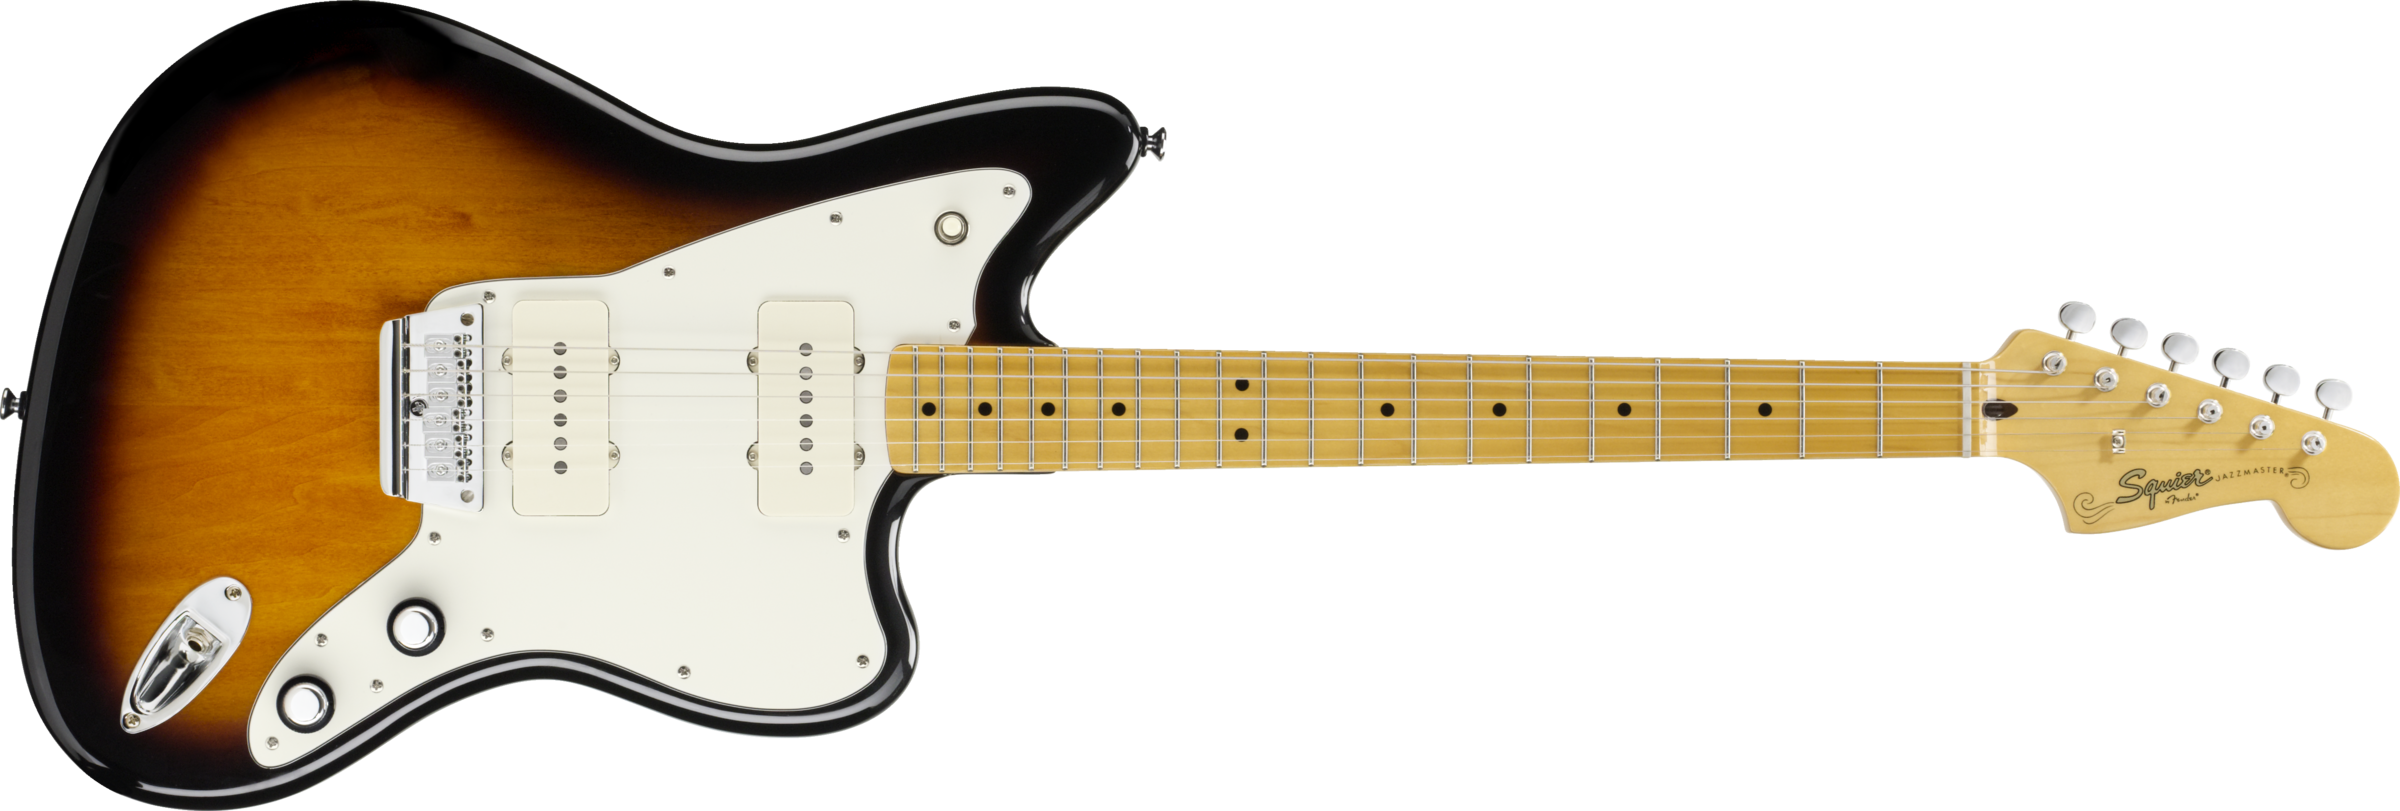 Squier Vintage Modified Jazz Master Special